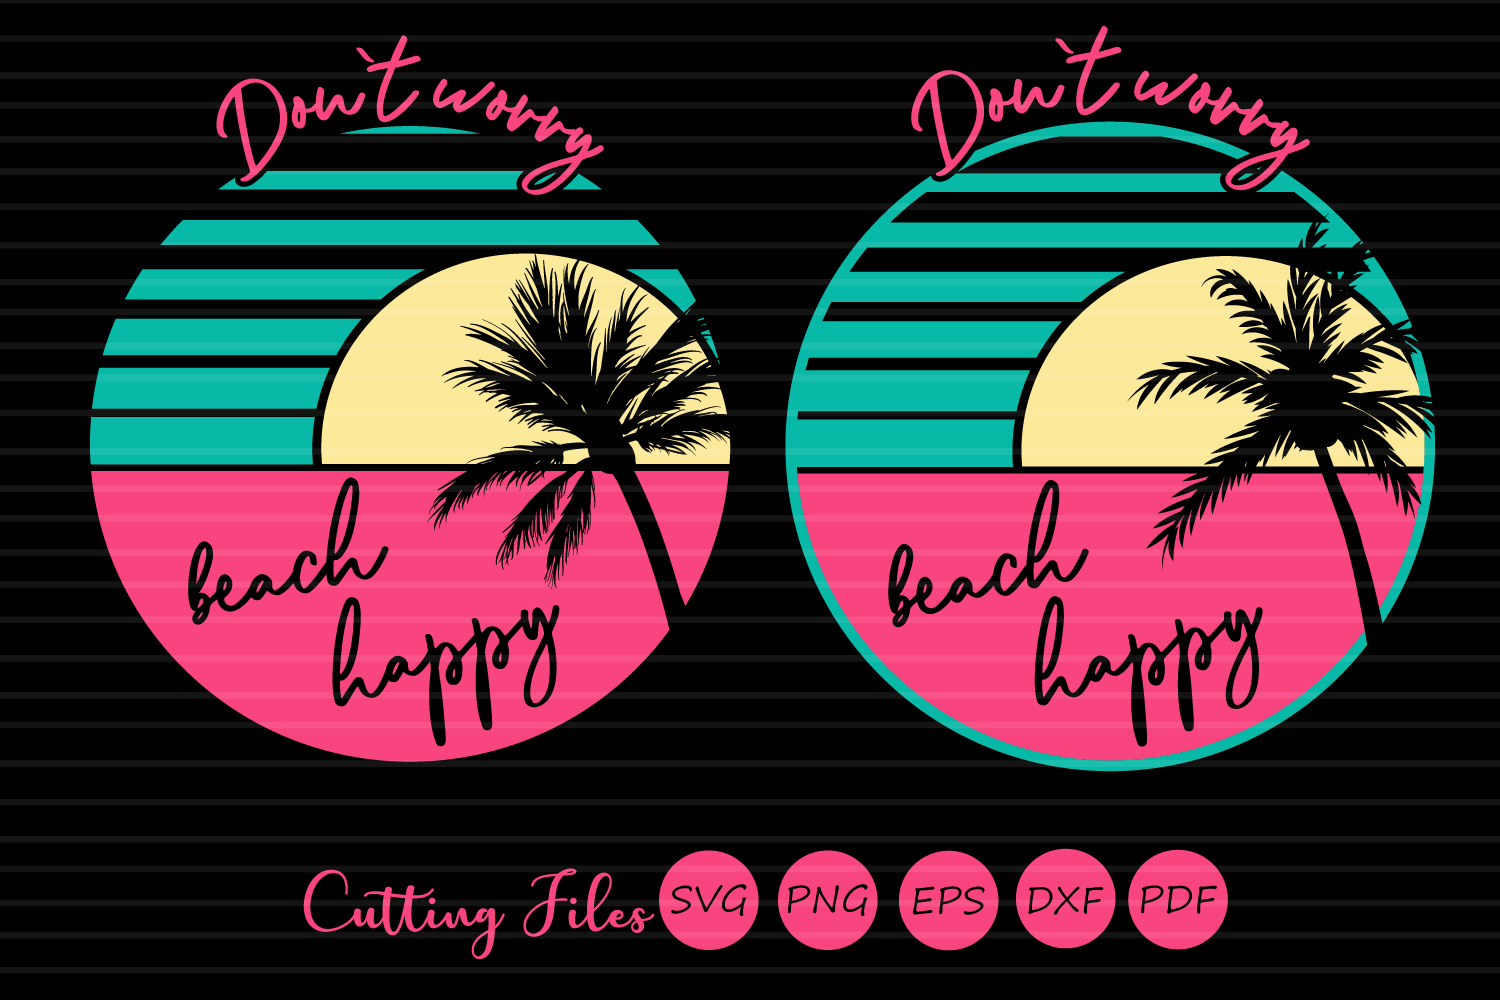 Dont worry beach happy | SVG Cut file | Summer | beach quote example image 1